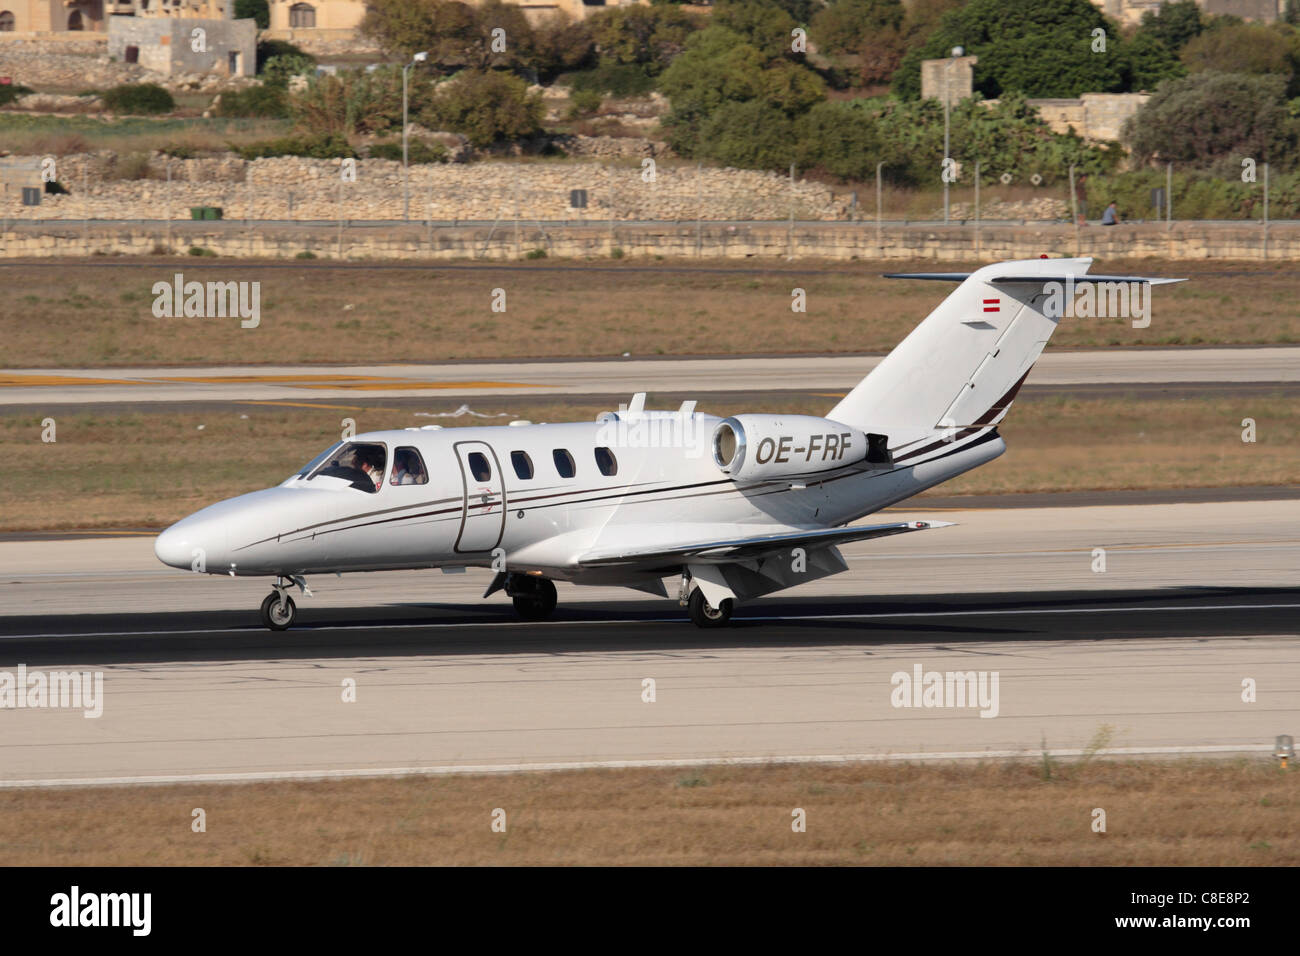 Cessna Citation CJ1 small business jet on the runway - Stock Image